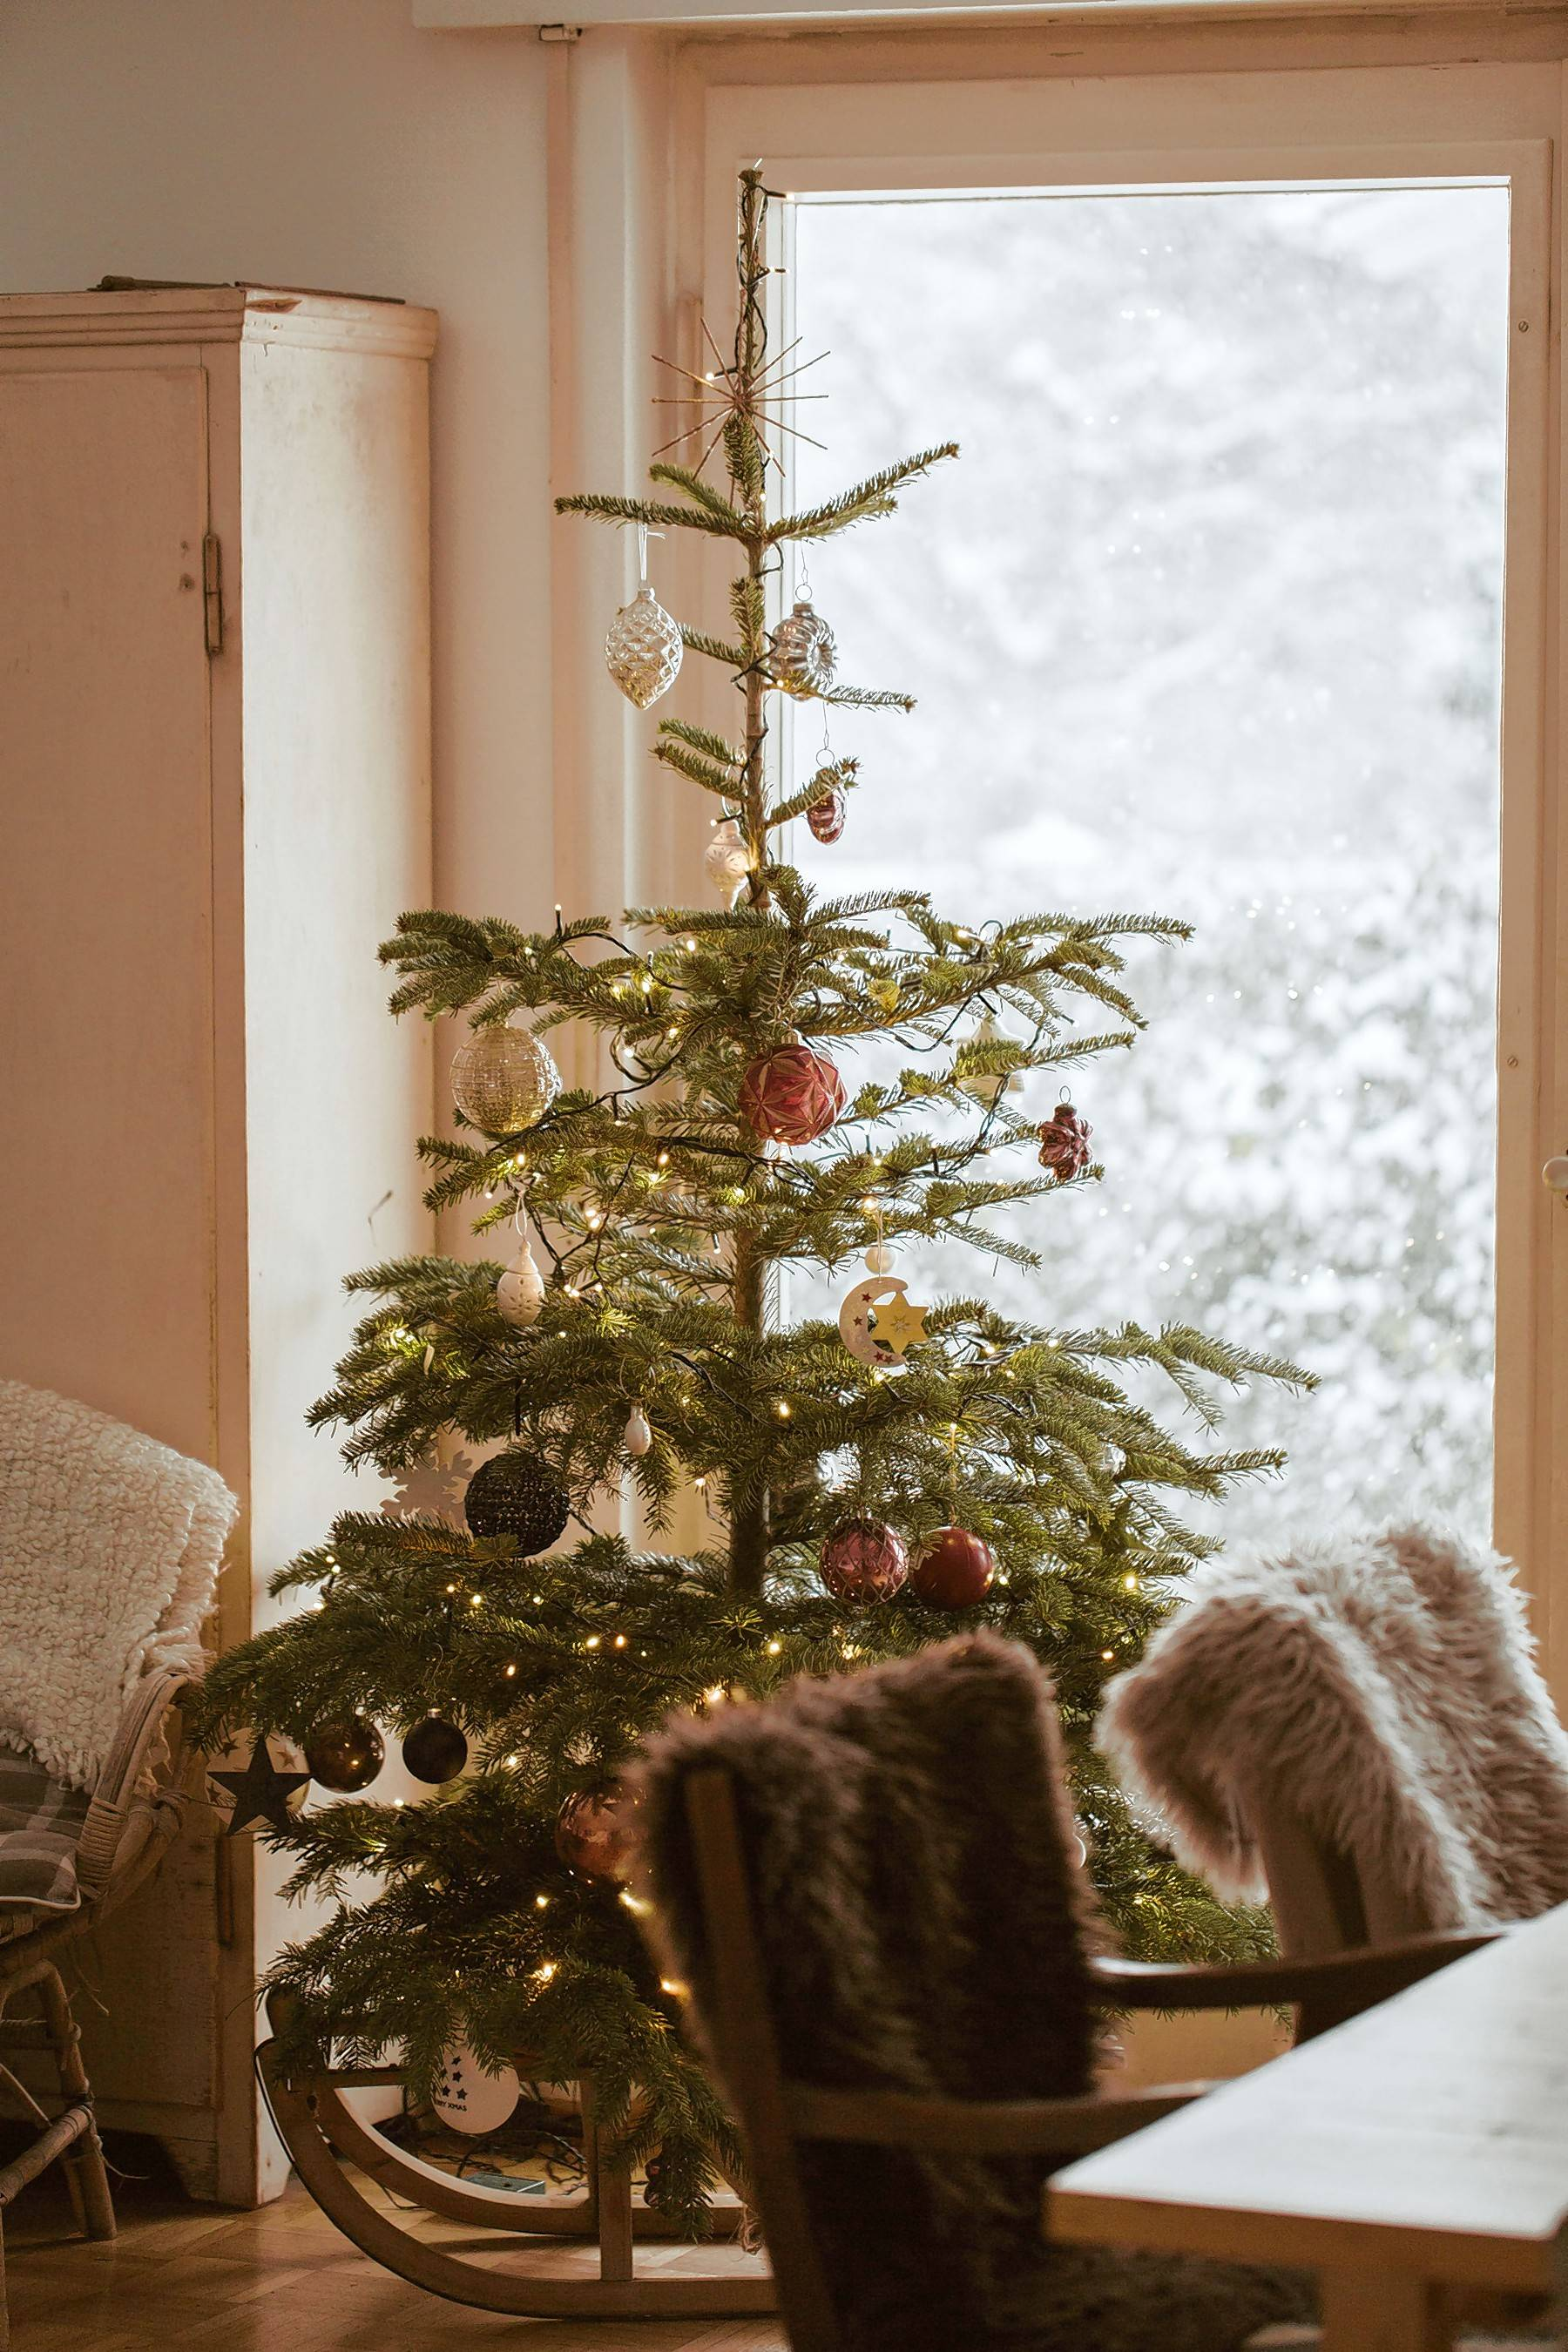 A shortage of Christmas trees will last for the next year or two.